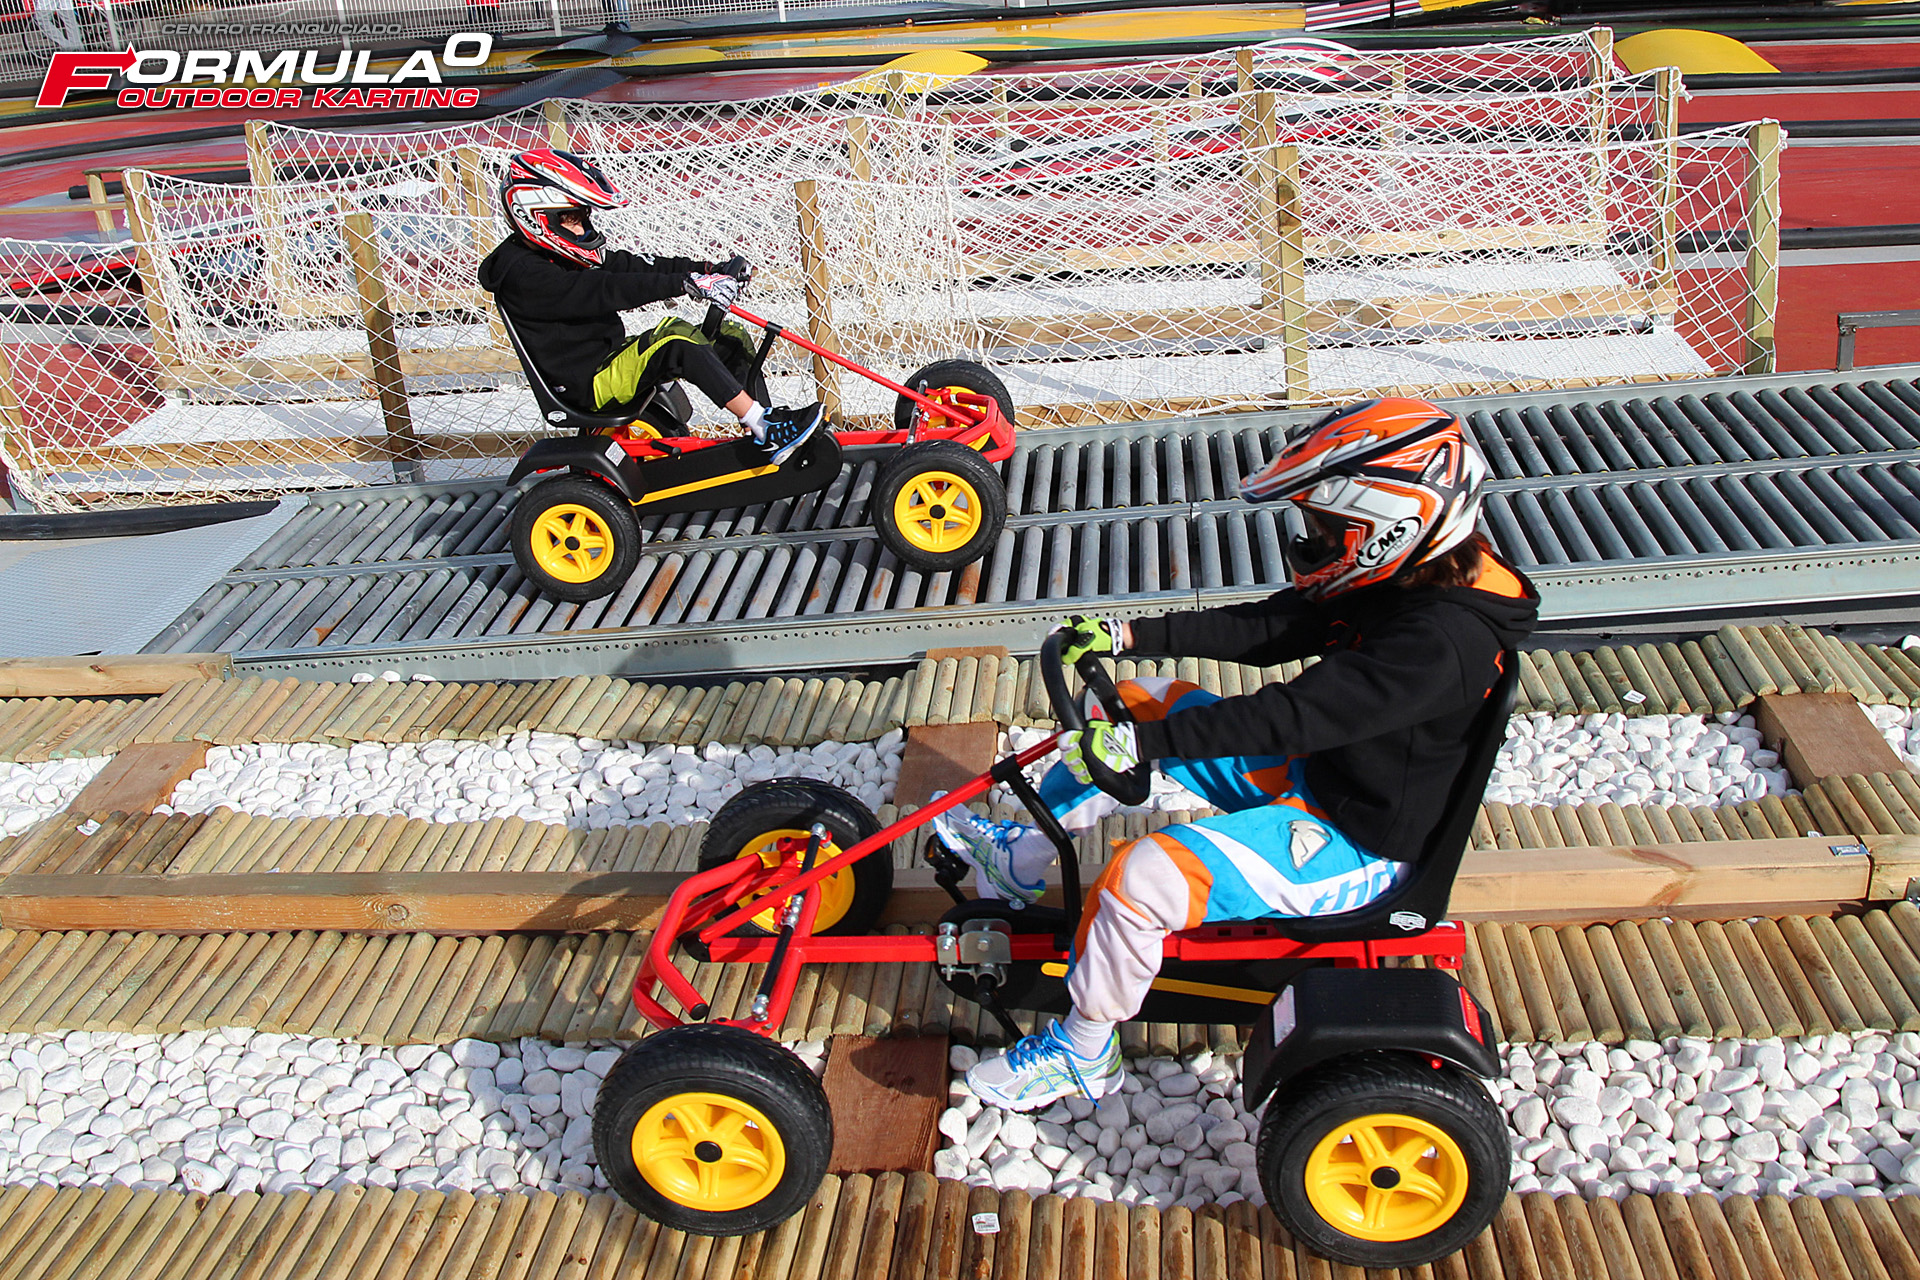 Circuito Karts : Pista streett kart a pedales formulacero outdoor karting